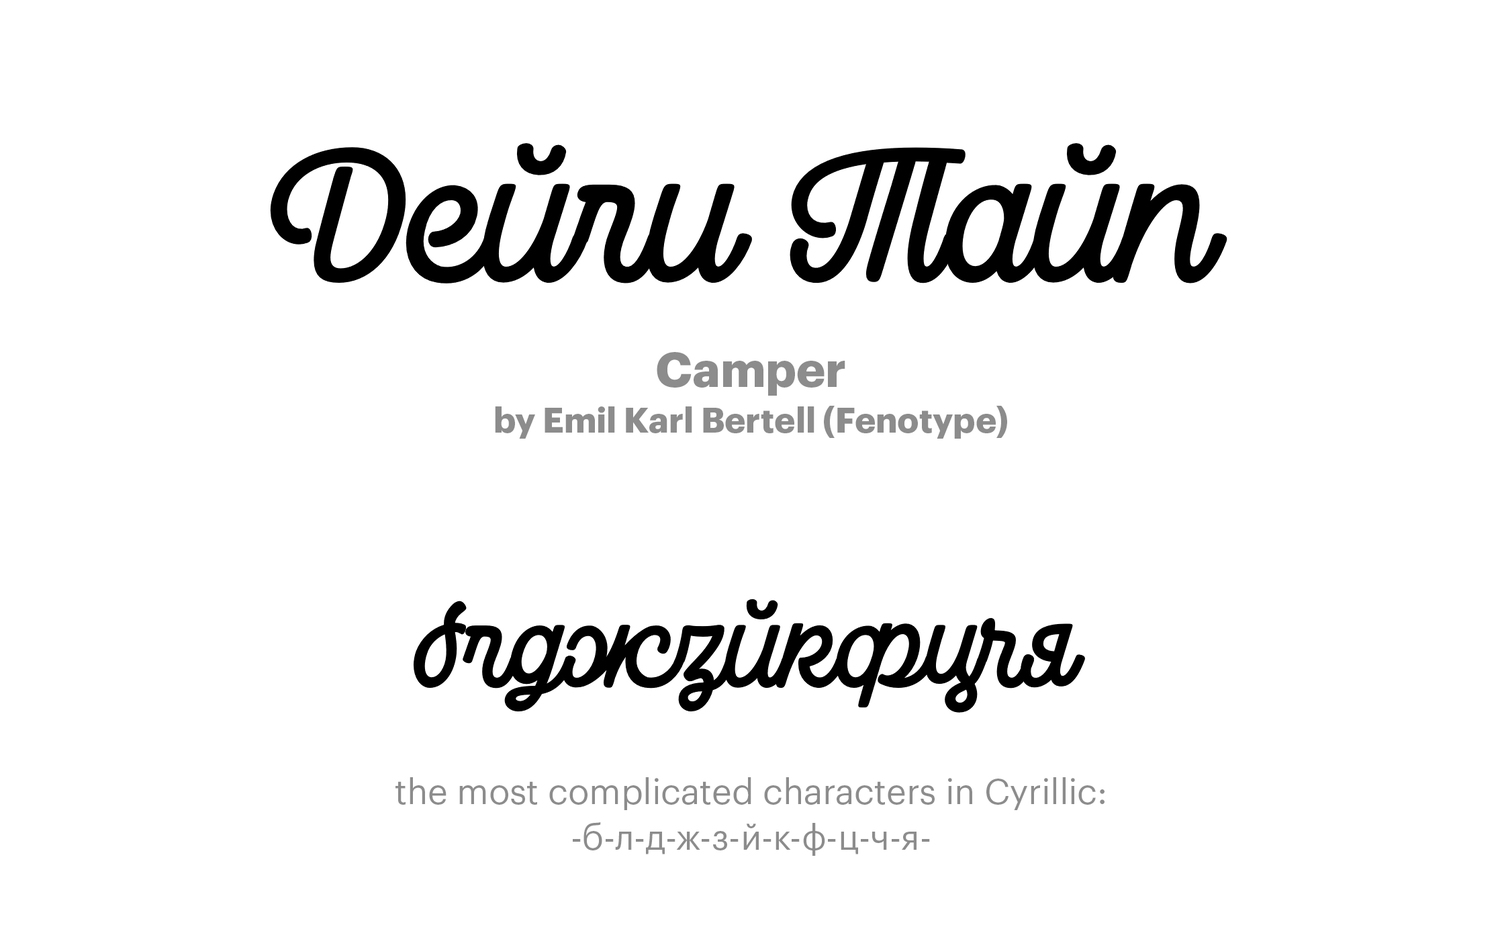 Camper-by-Emil-Karl-Bertell-(Fenotype)